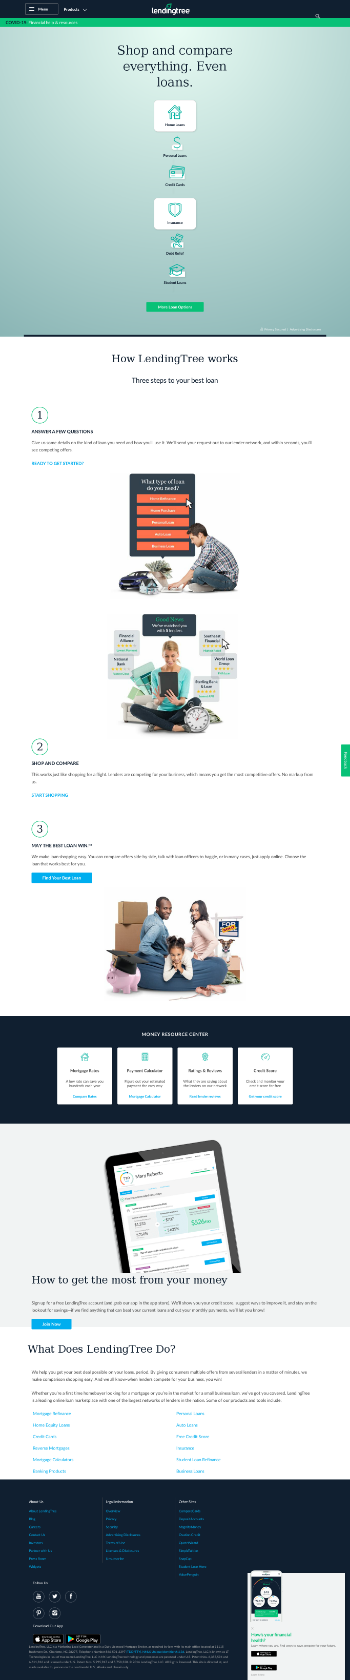 LendingTree, Inc. Website Screenshot